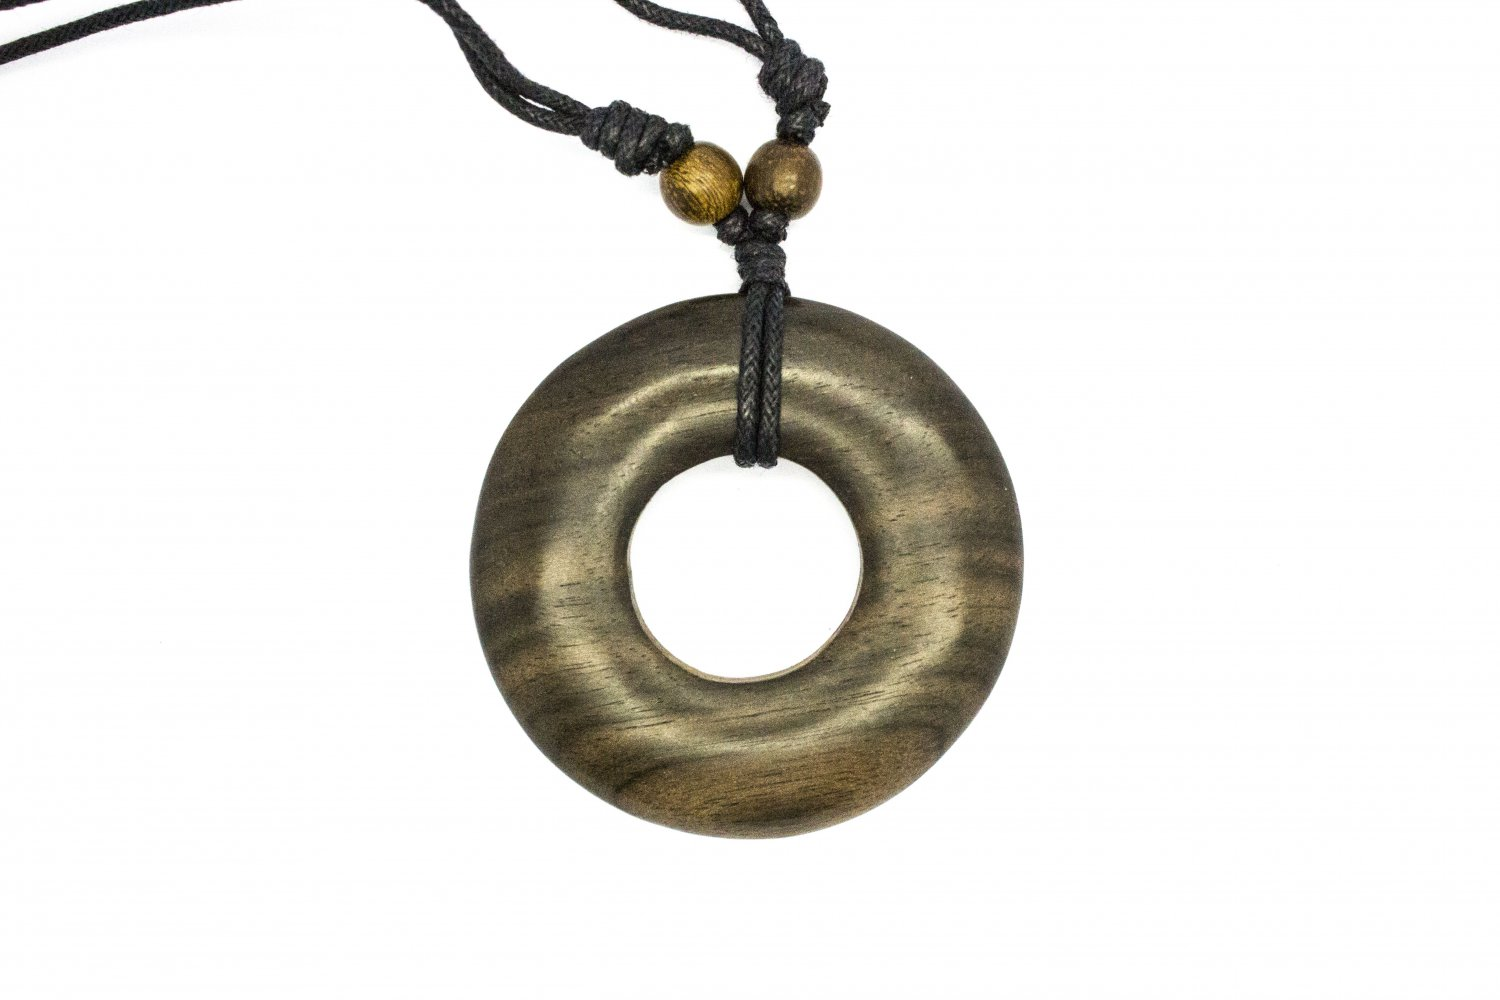 Circle Ring Pendant - Donut Shaped wood pendant Necklace!